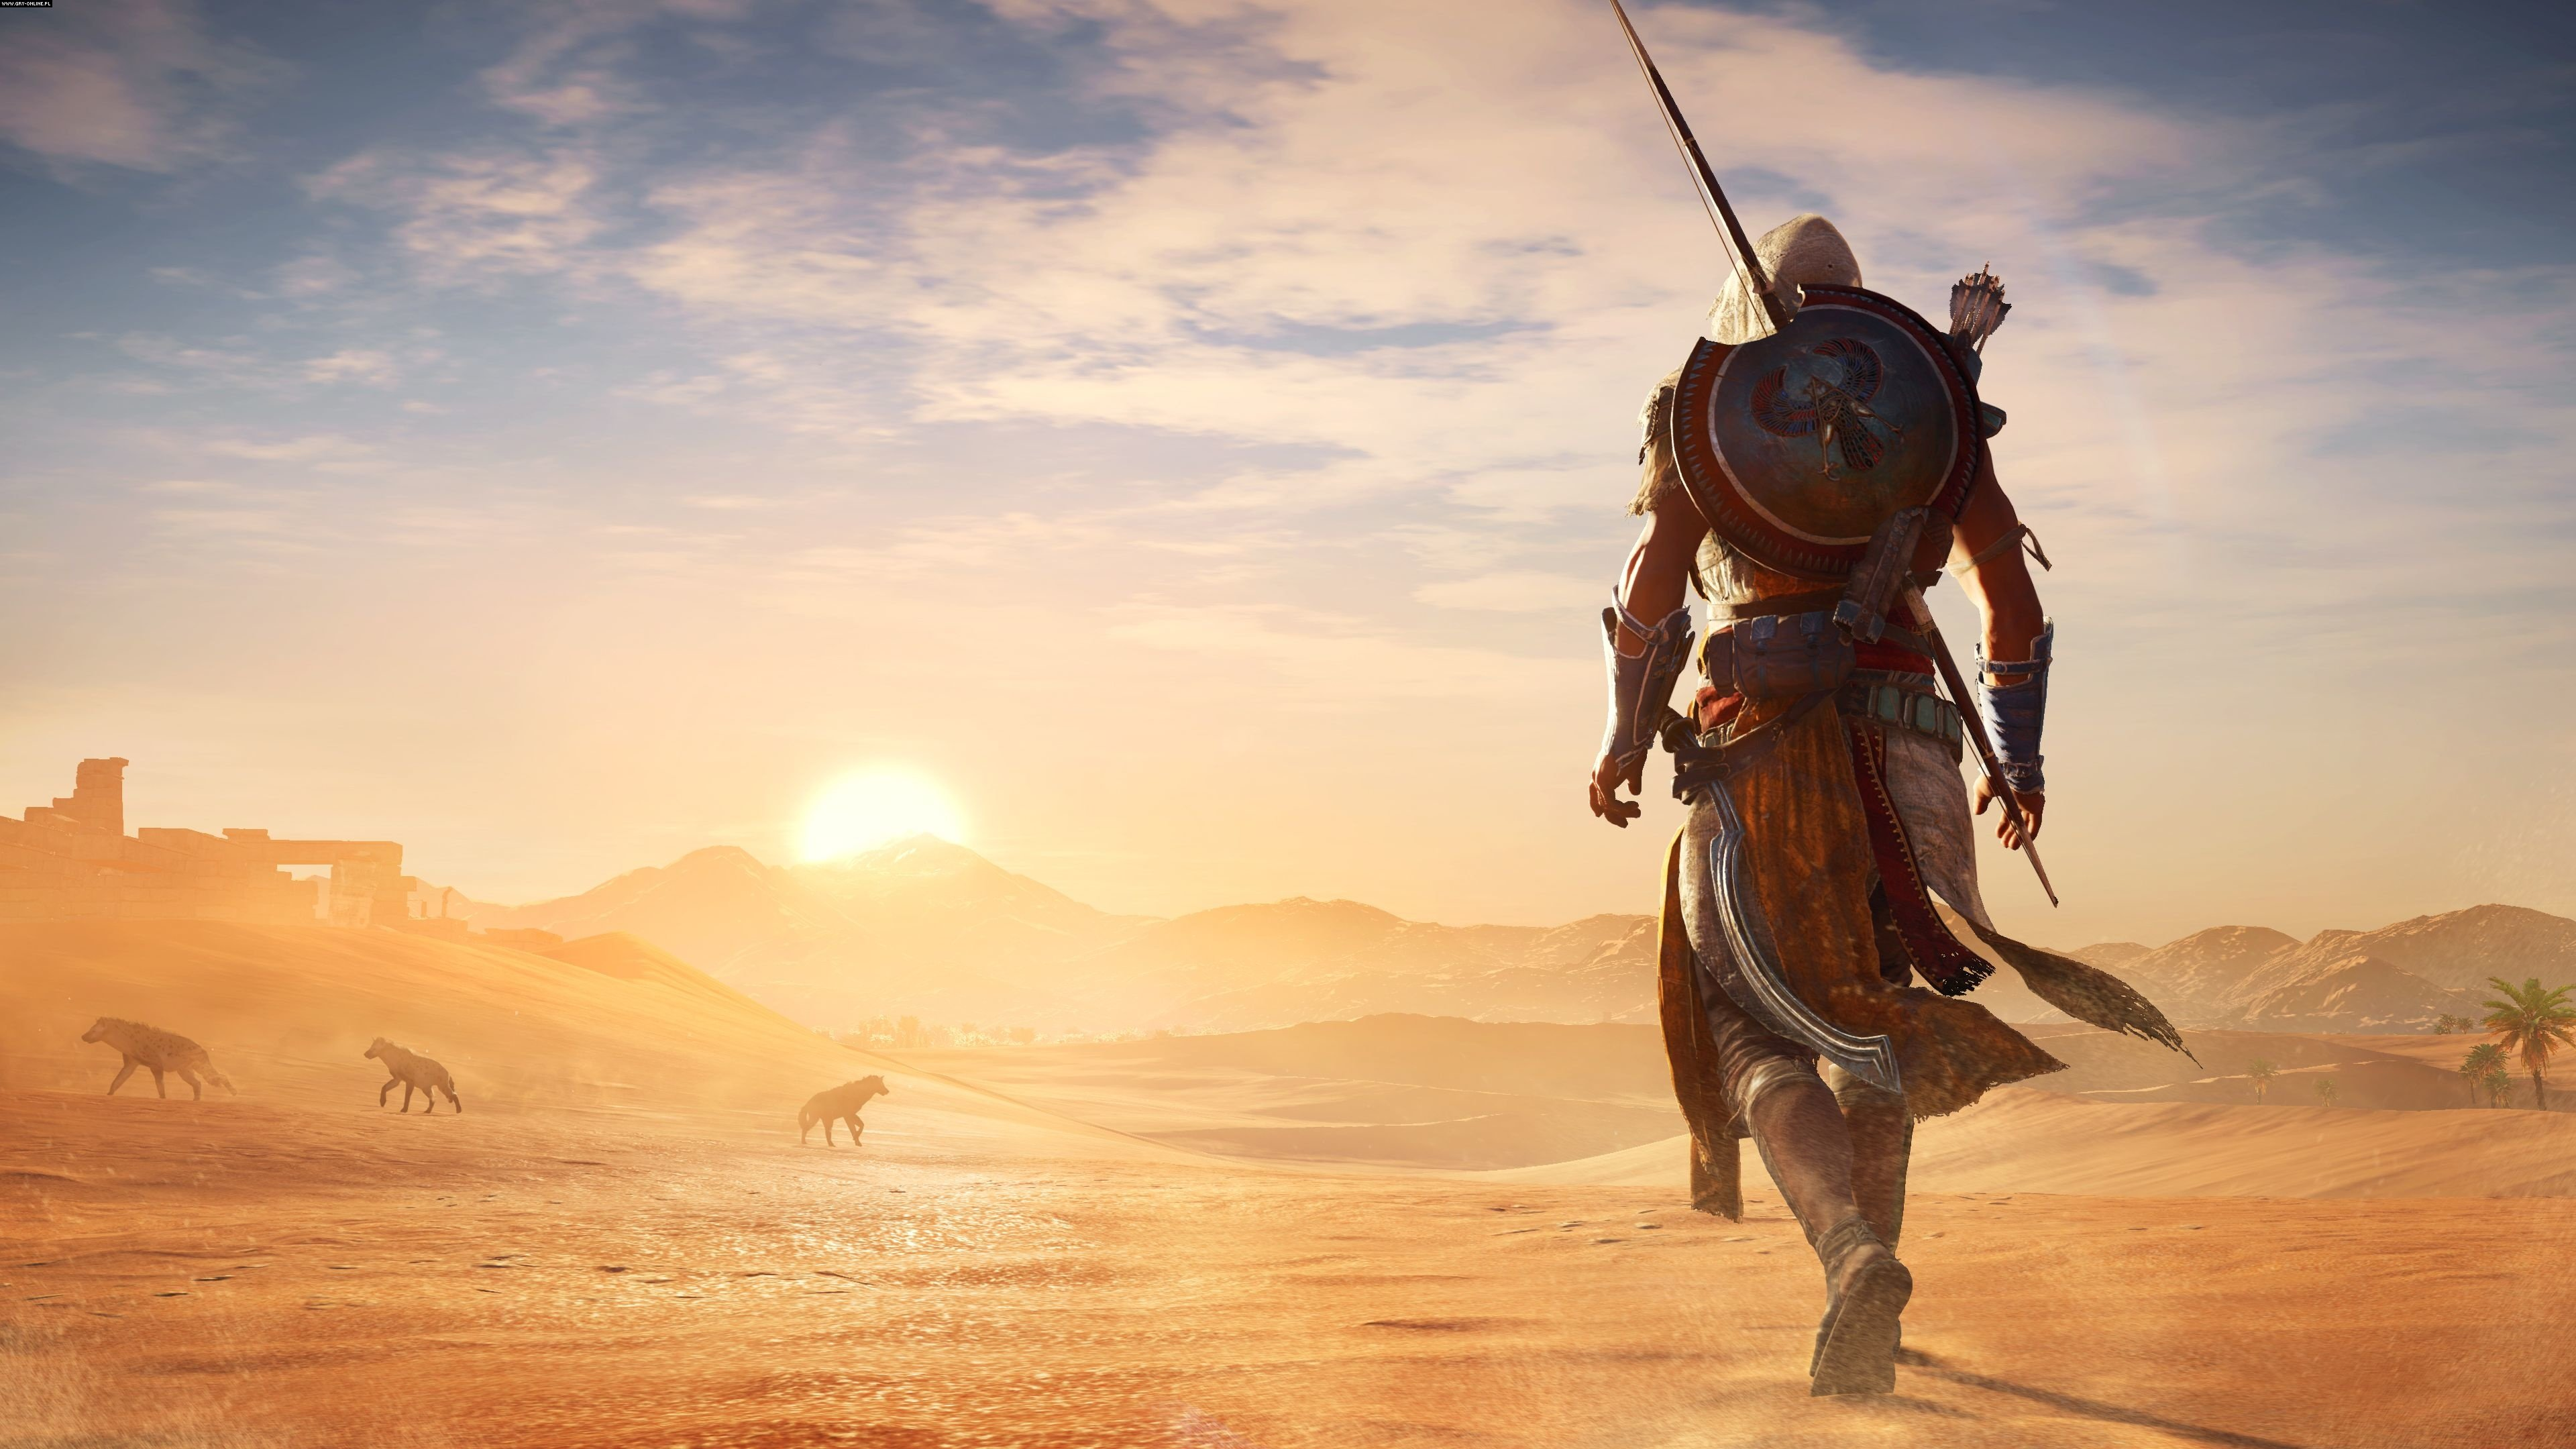 Assassin's Creed Origins PC, PS4, XONE Games Image 89/96, Ubisoft